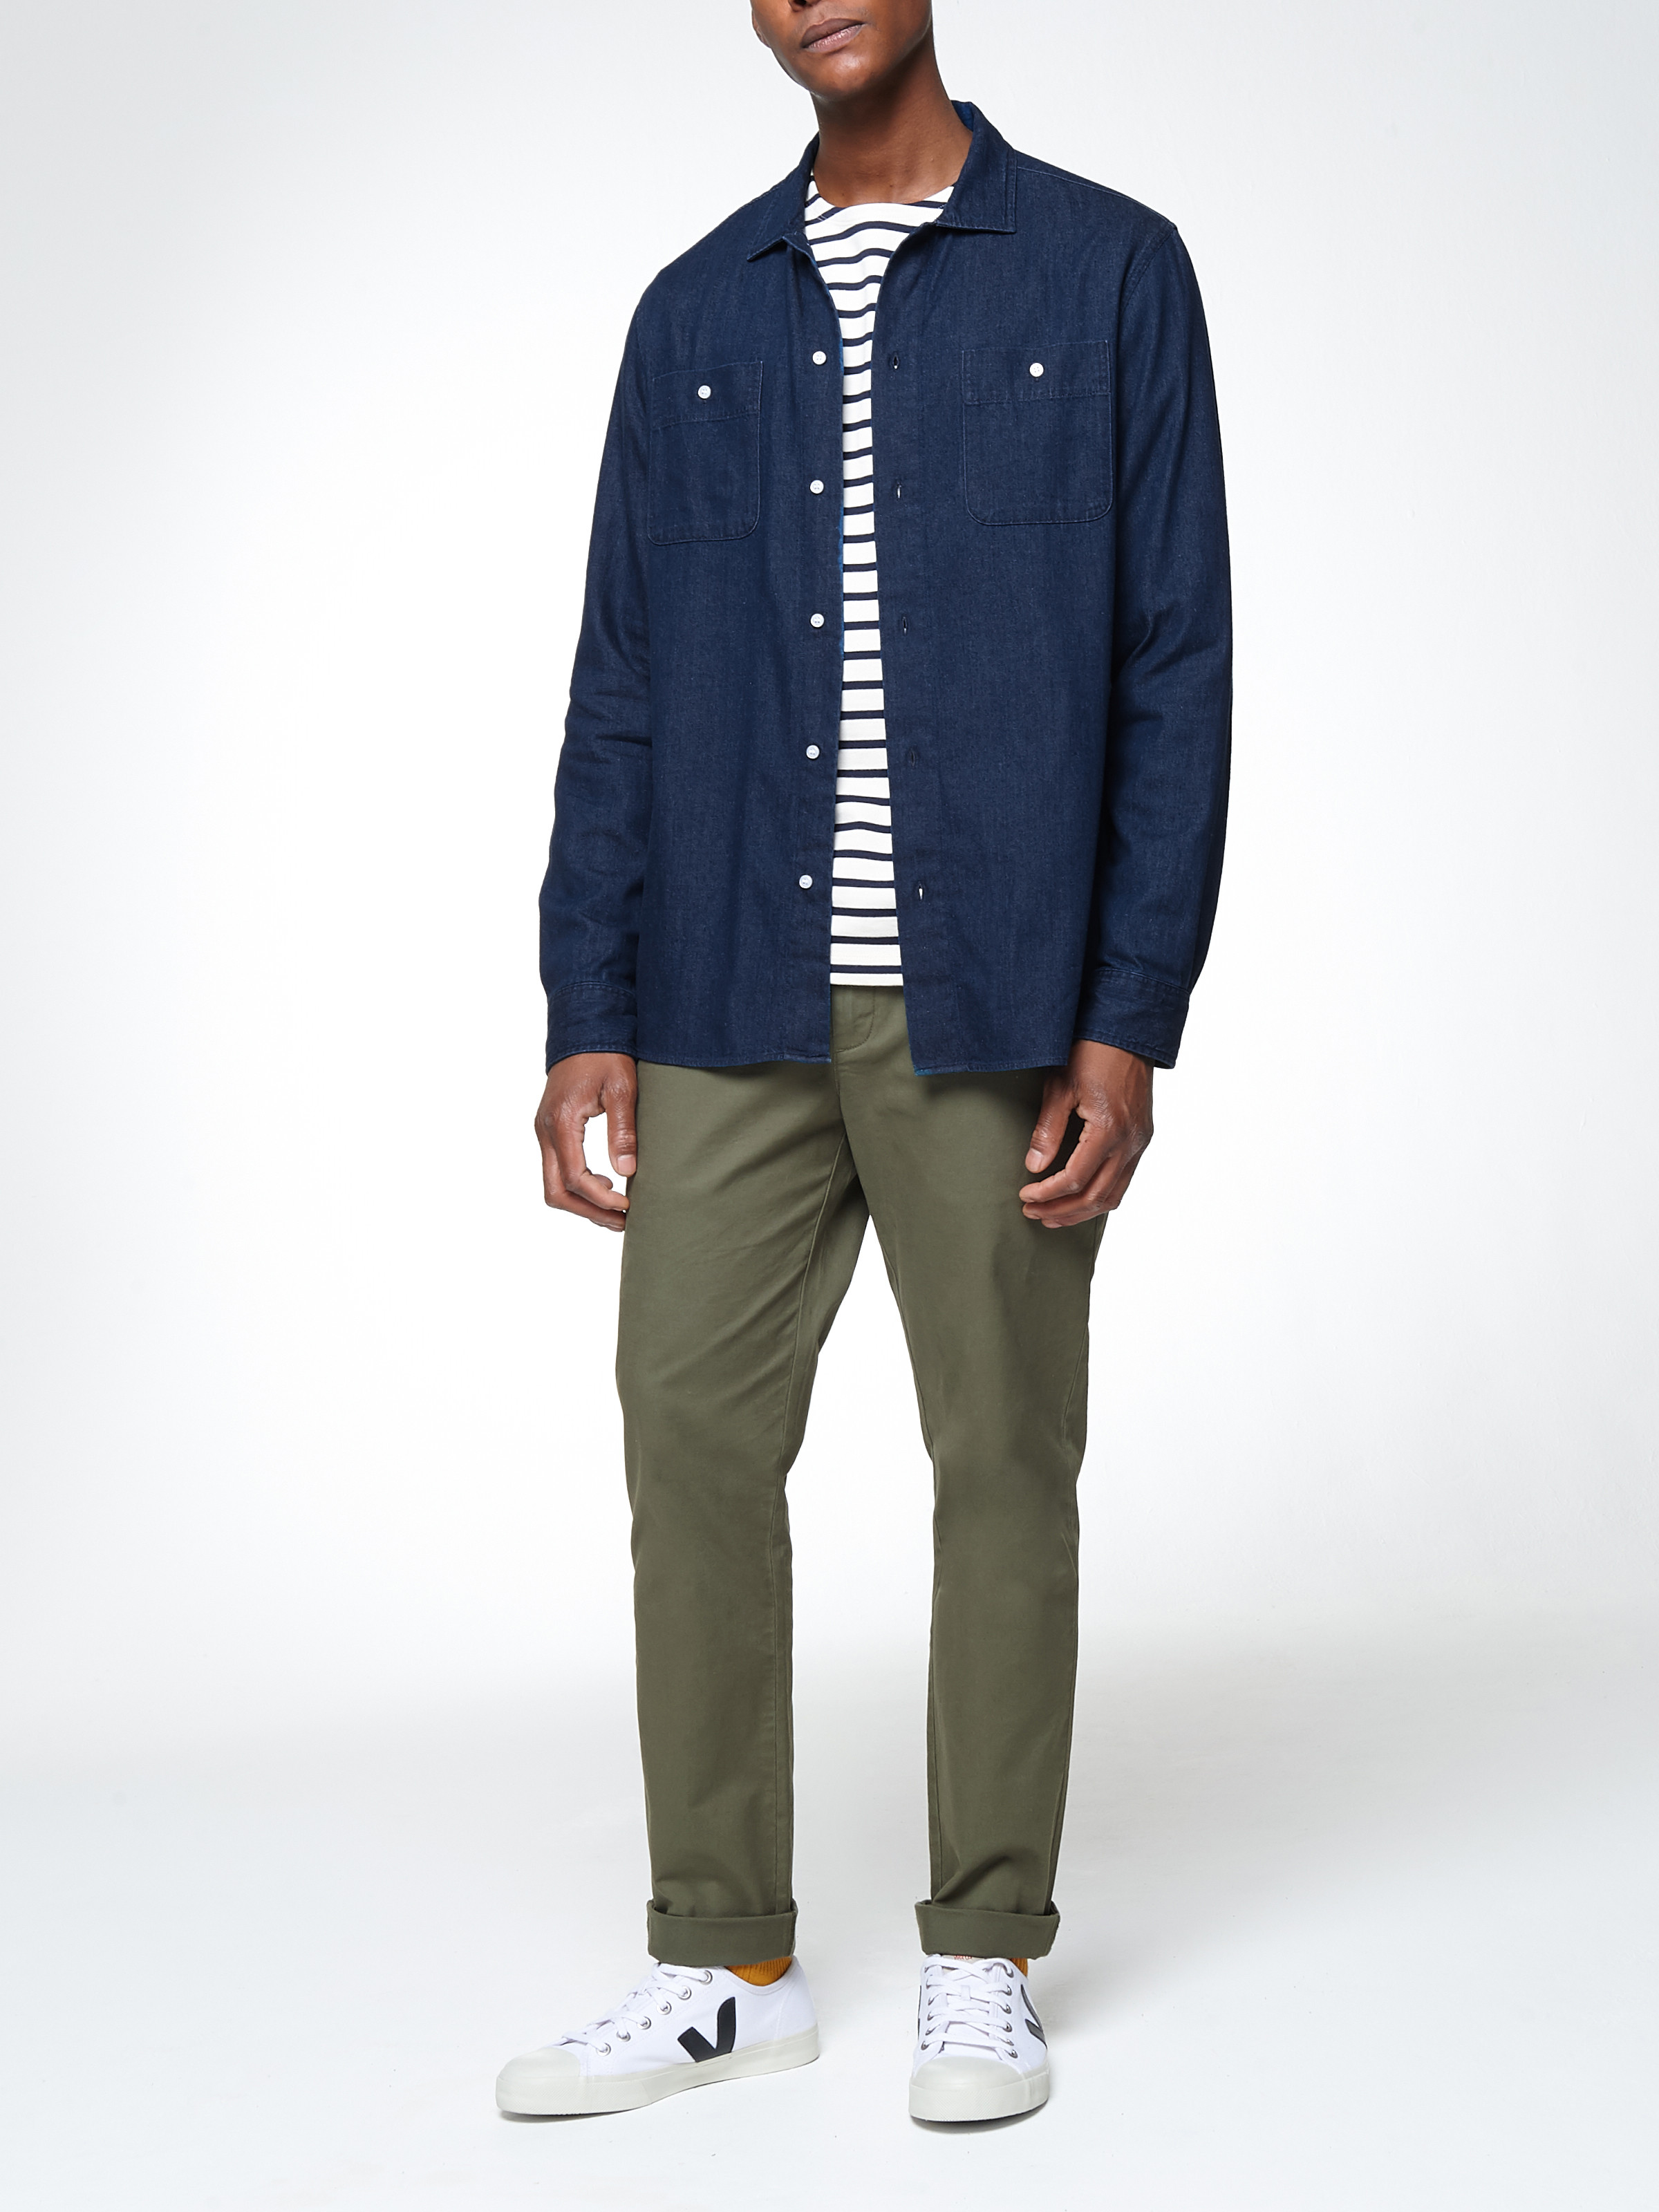 Men's outfit idea for 2021 with blue denim shirt, striped long-sleeved t-shirt, colored chinos, white sneakers. Suitable for spring and fall.